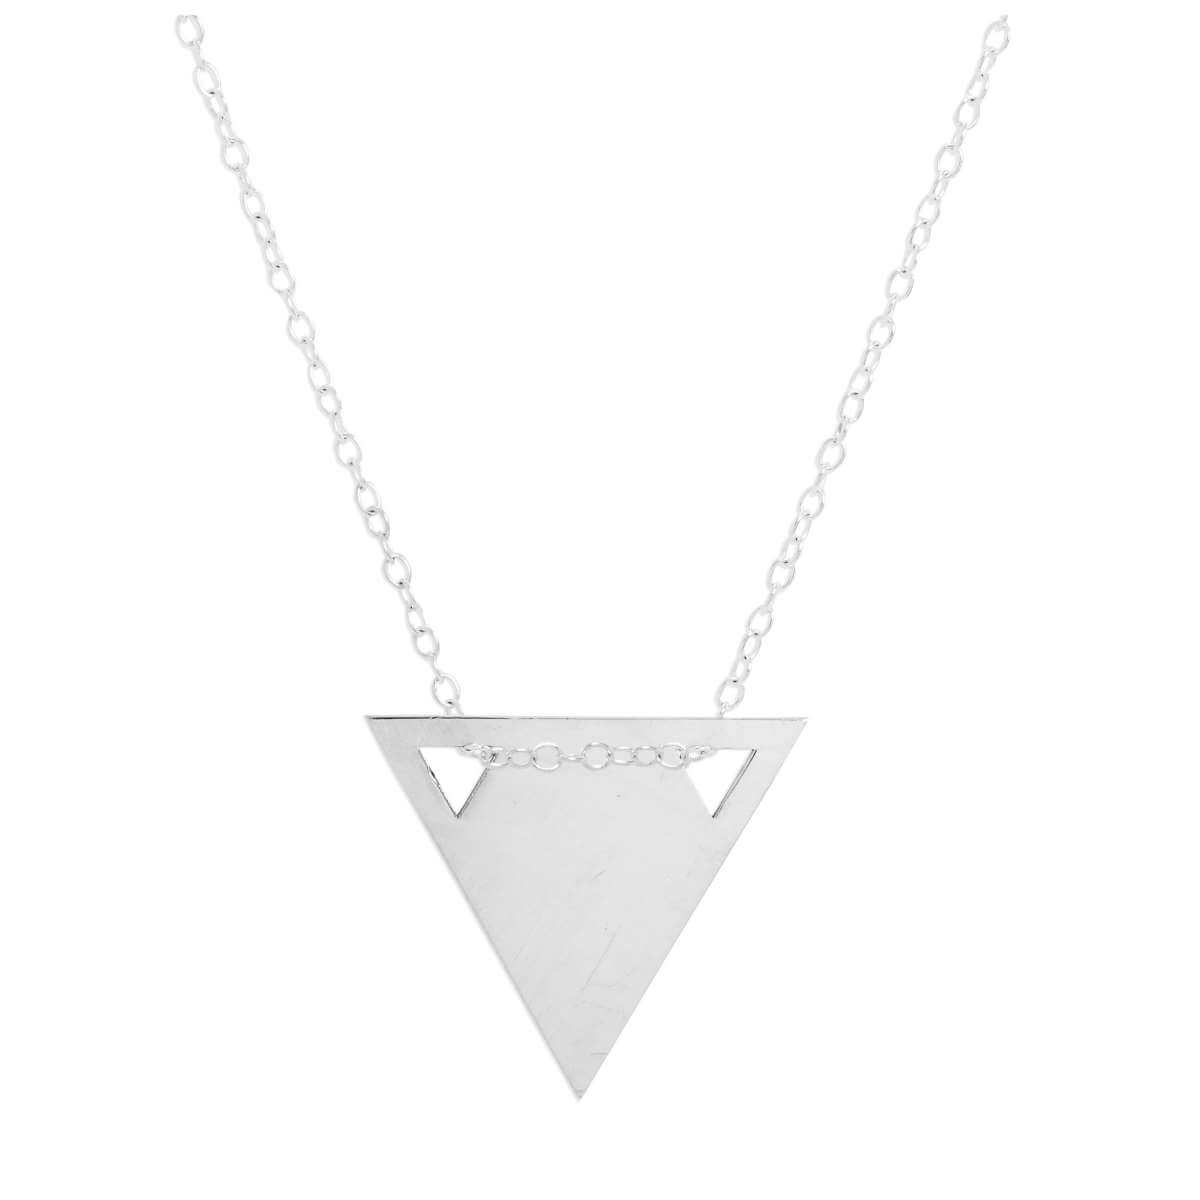 Sterling Silver Engravable Flat Triangle Pendant Necklace 14 - 22 Inches